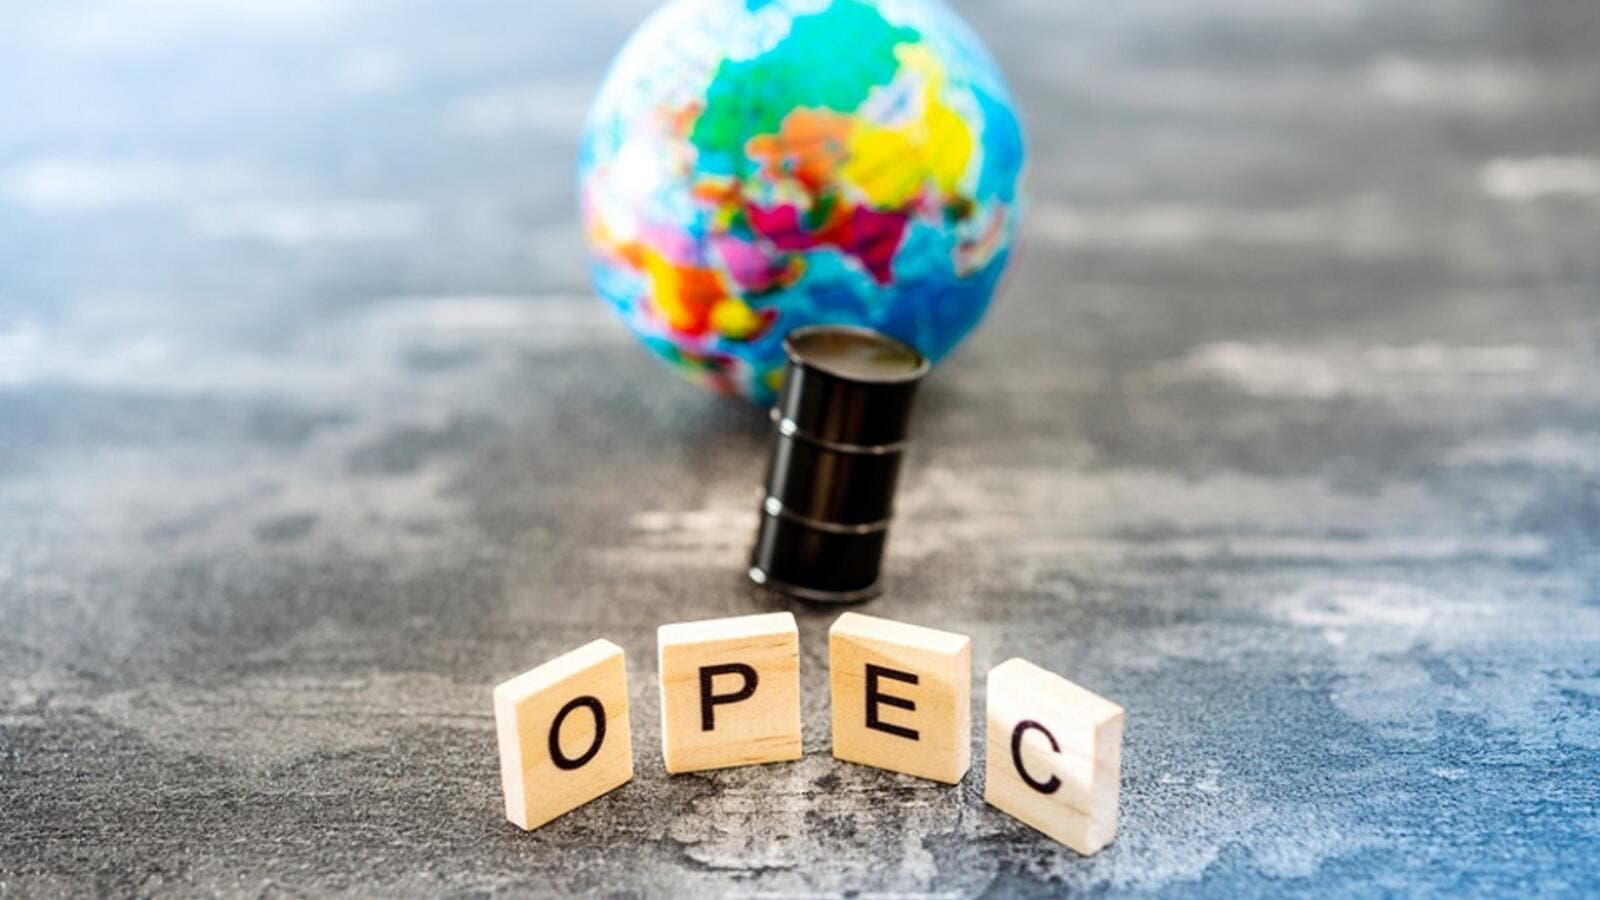 OPEC+, have pledged to cut production by 1.2 million barrels per day (bpd) until March 2020